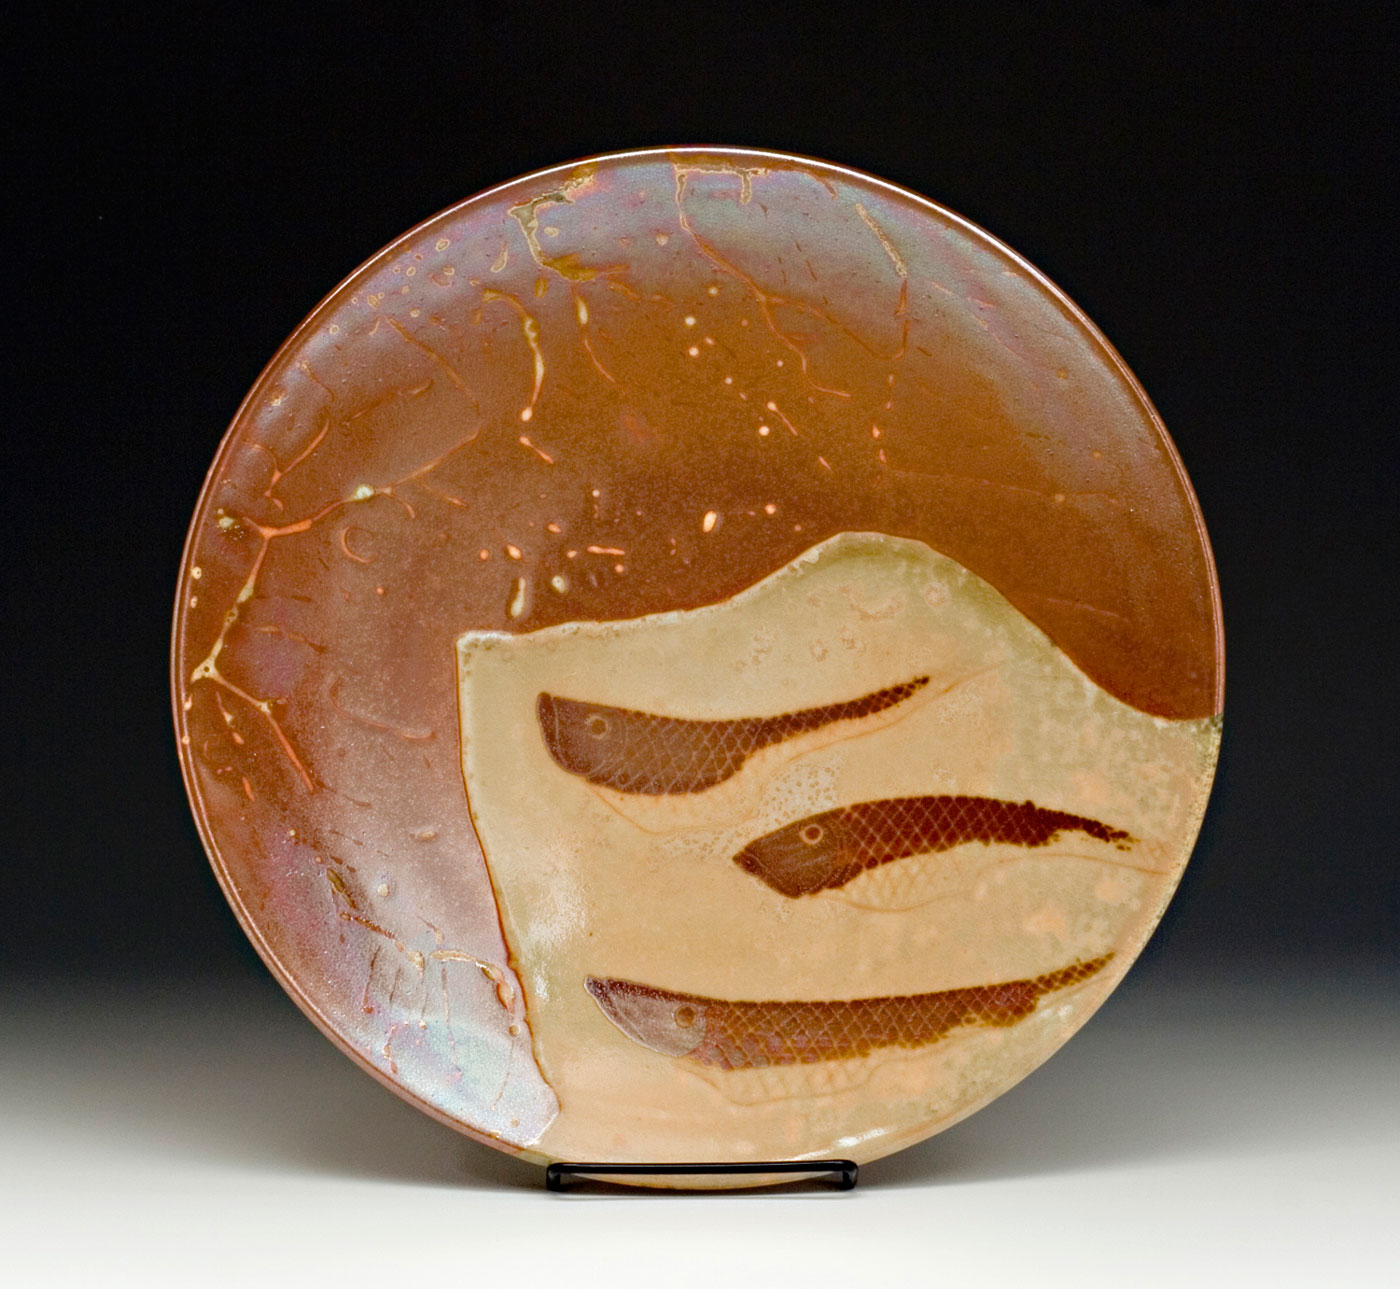 Shino-Fish-Plate-Contemporary-Ceramics-Bruce-Gholson.jpg